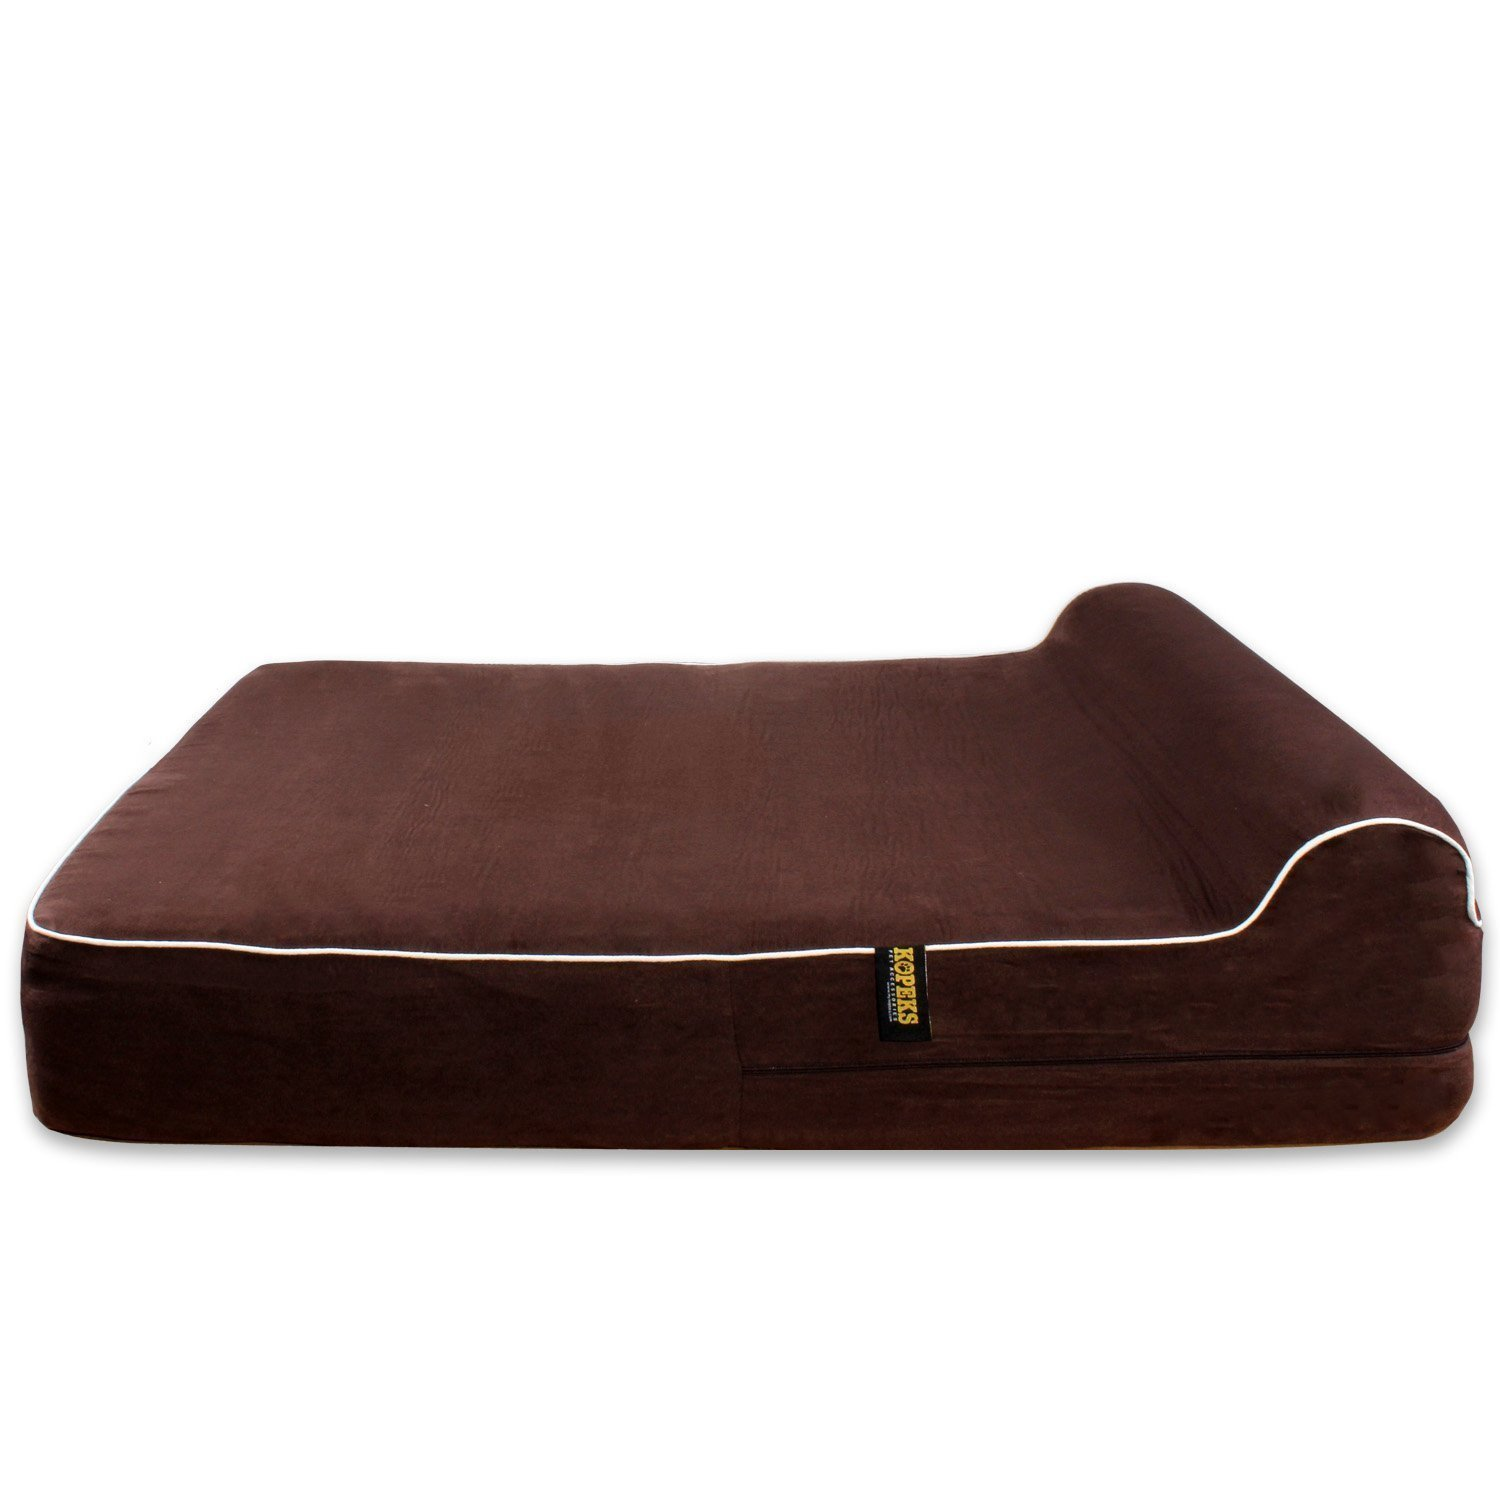 KOPEKS Dog Bed Replacement Cover (ONLY) Memory Foam Beds - Brown - Large